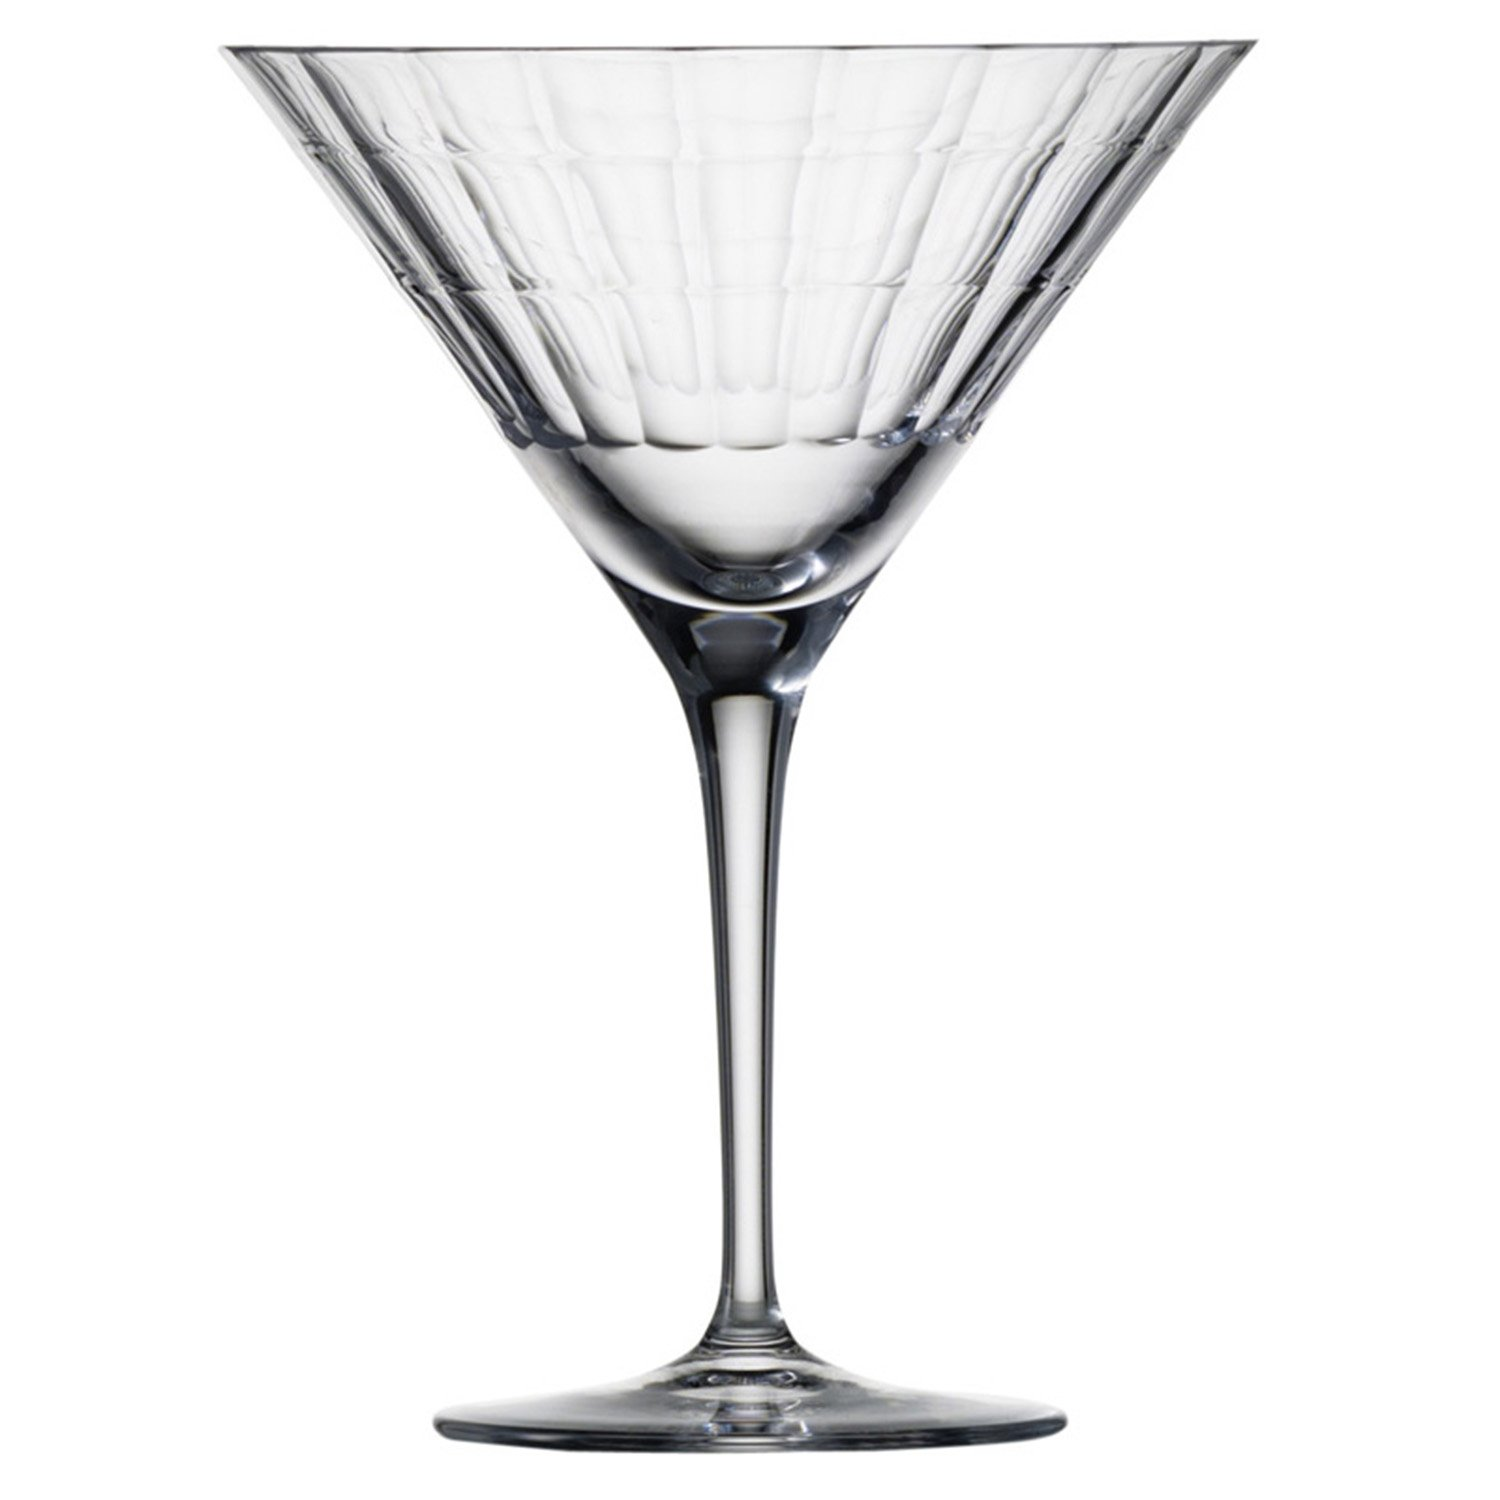 Zwiesel 1872 Charles Schumann Hommage Collection Carat Handmade Glass Martini Cocktail Glass, 10-Ounce, Set of 2